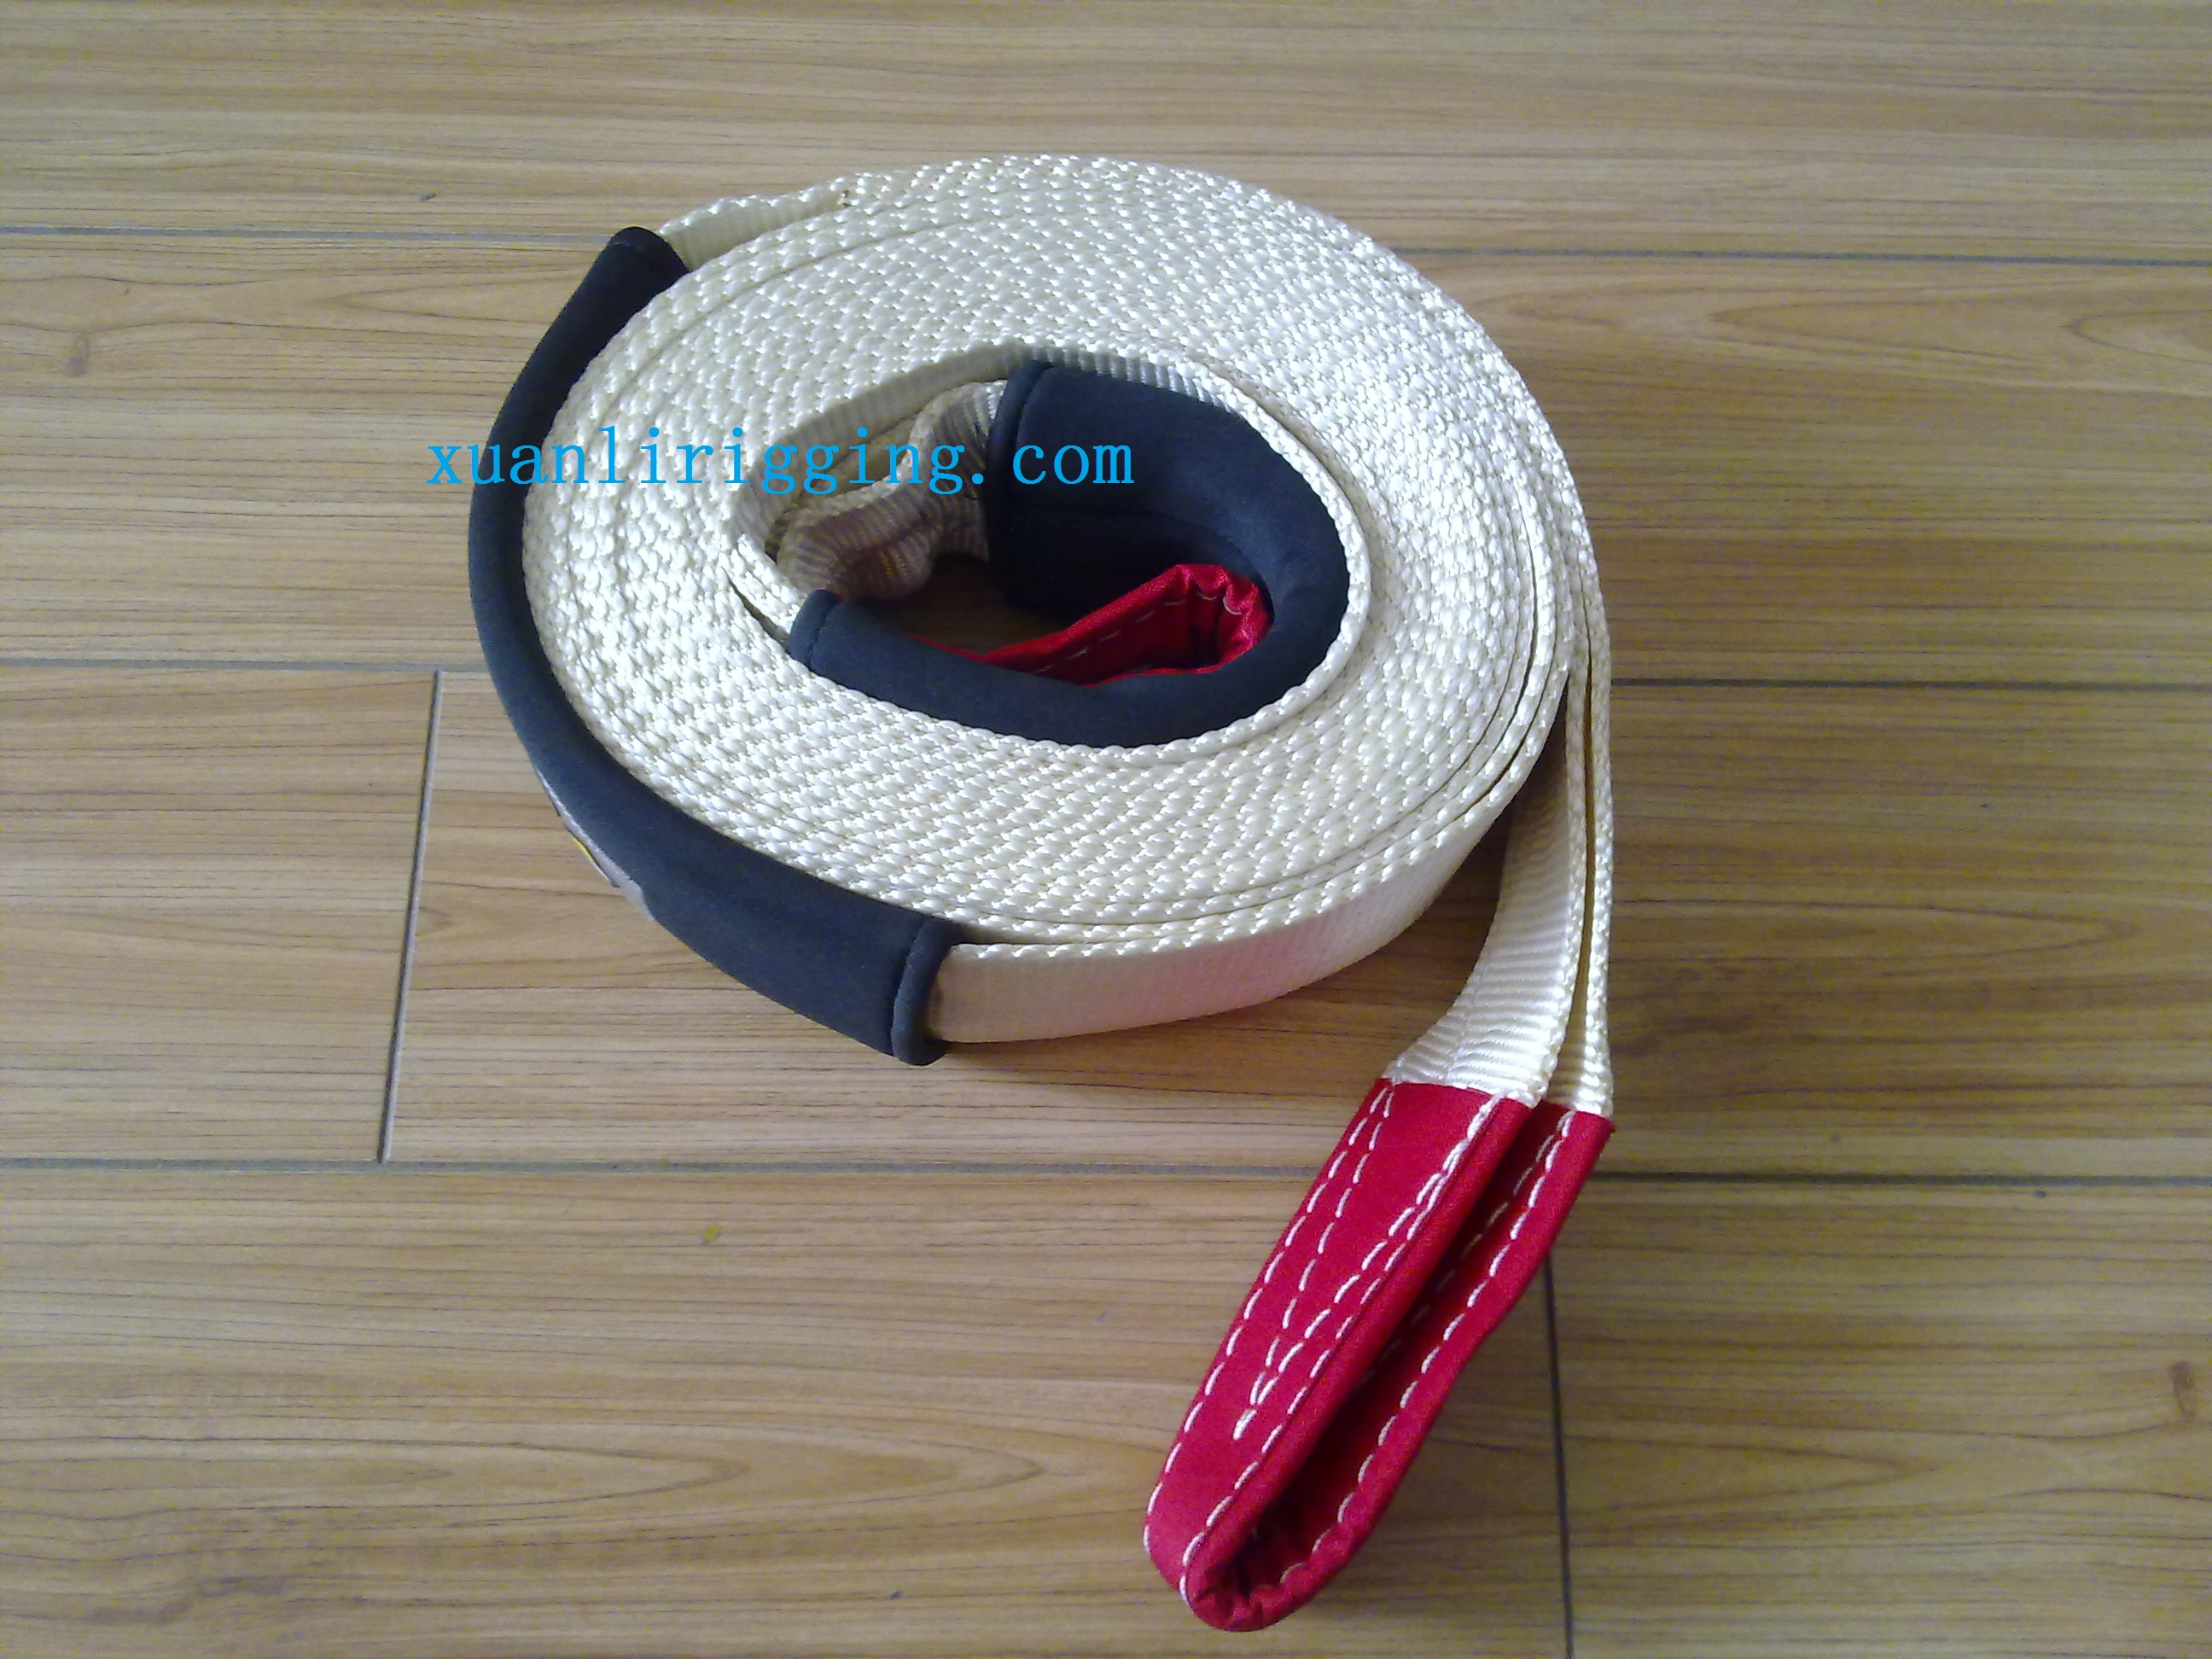 recovery strap 8T